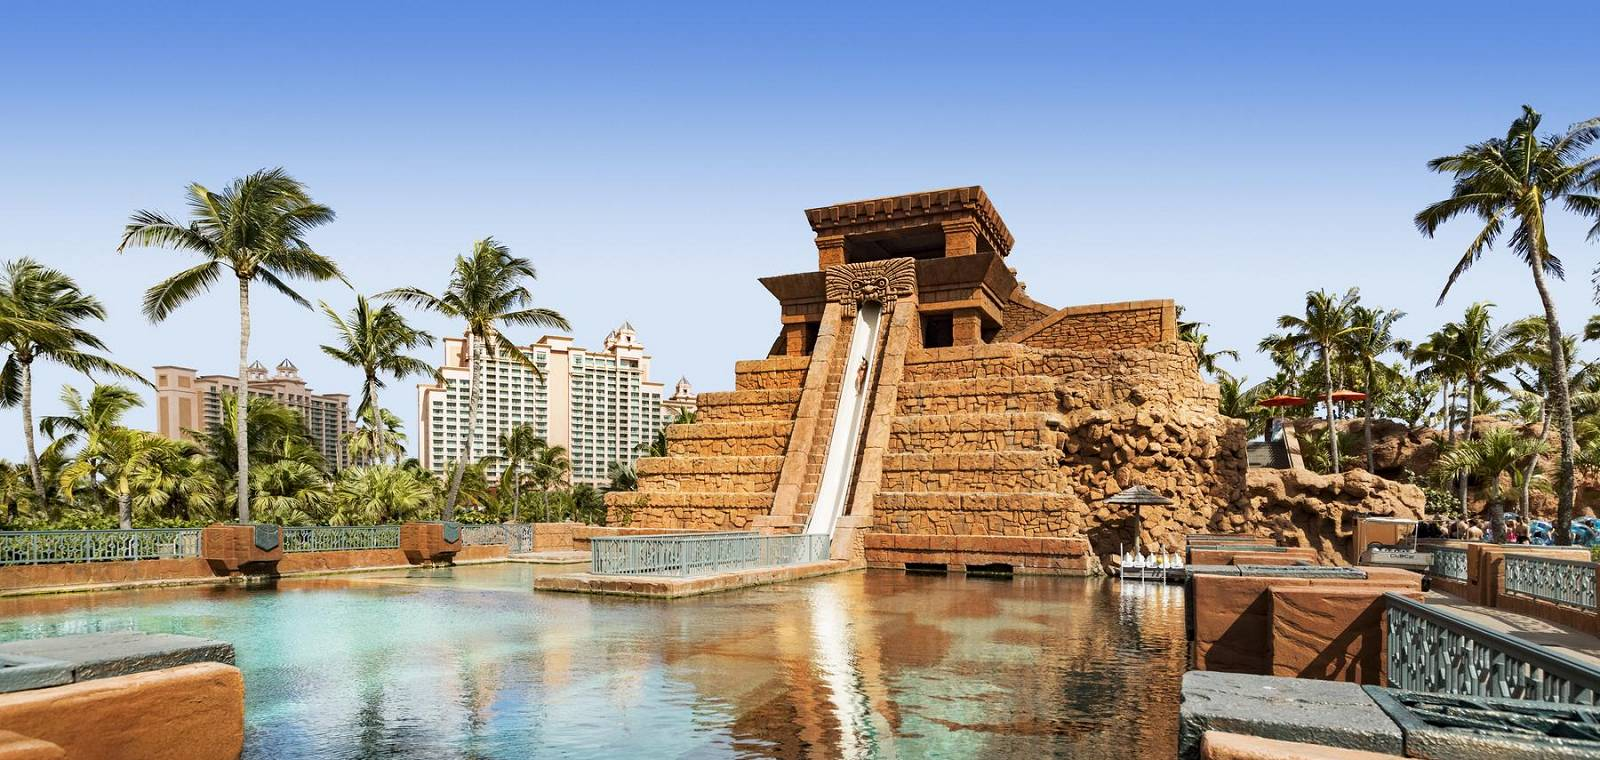 Water park pyramid slide at the Atlantis paradise island hotel with the hotel featured in the background and palm trees framing the water slide